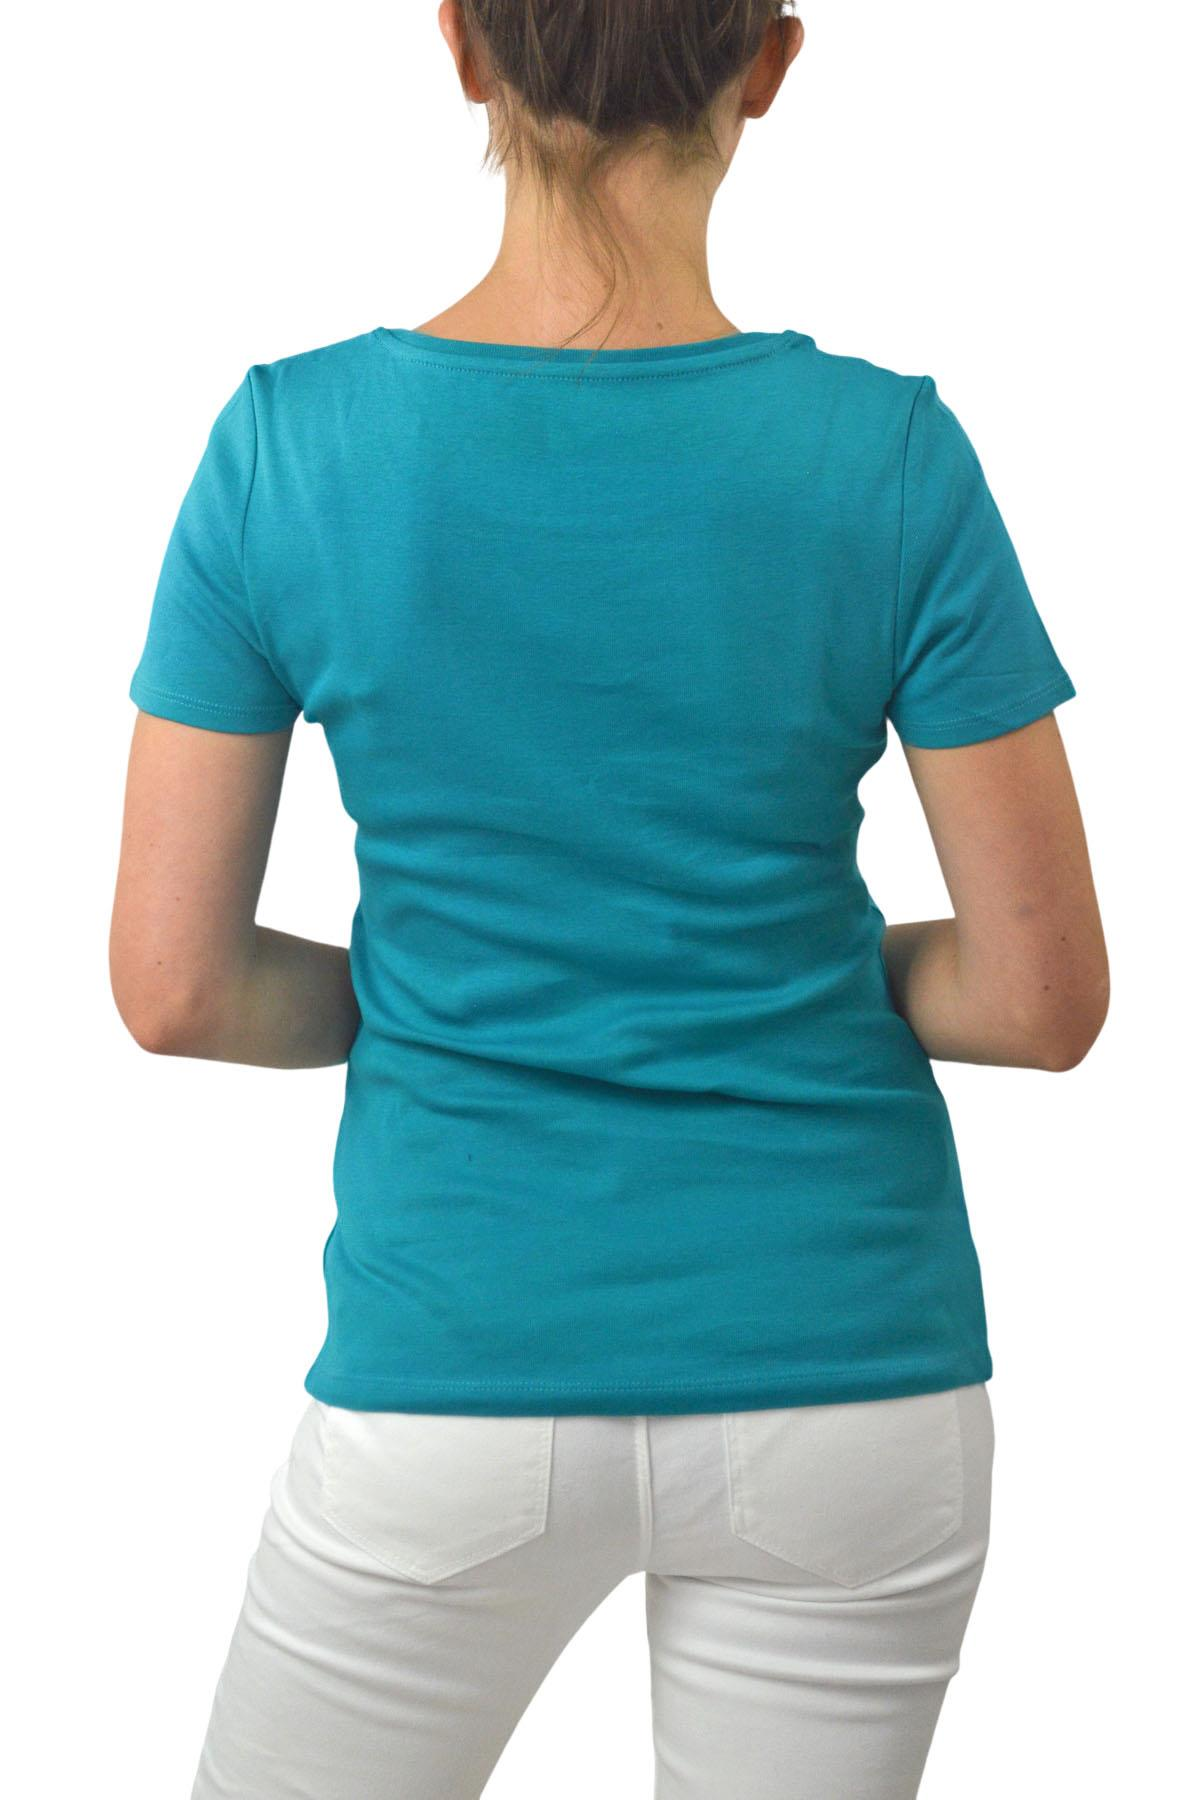 M-amp-S-Ladies-Short-Sleeve-Cotton-T-Shirt-Slim-Fit-Curved-Hem-Size-4-to-24 thumbnail 22